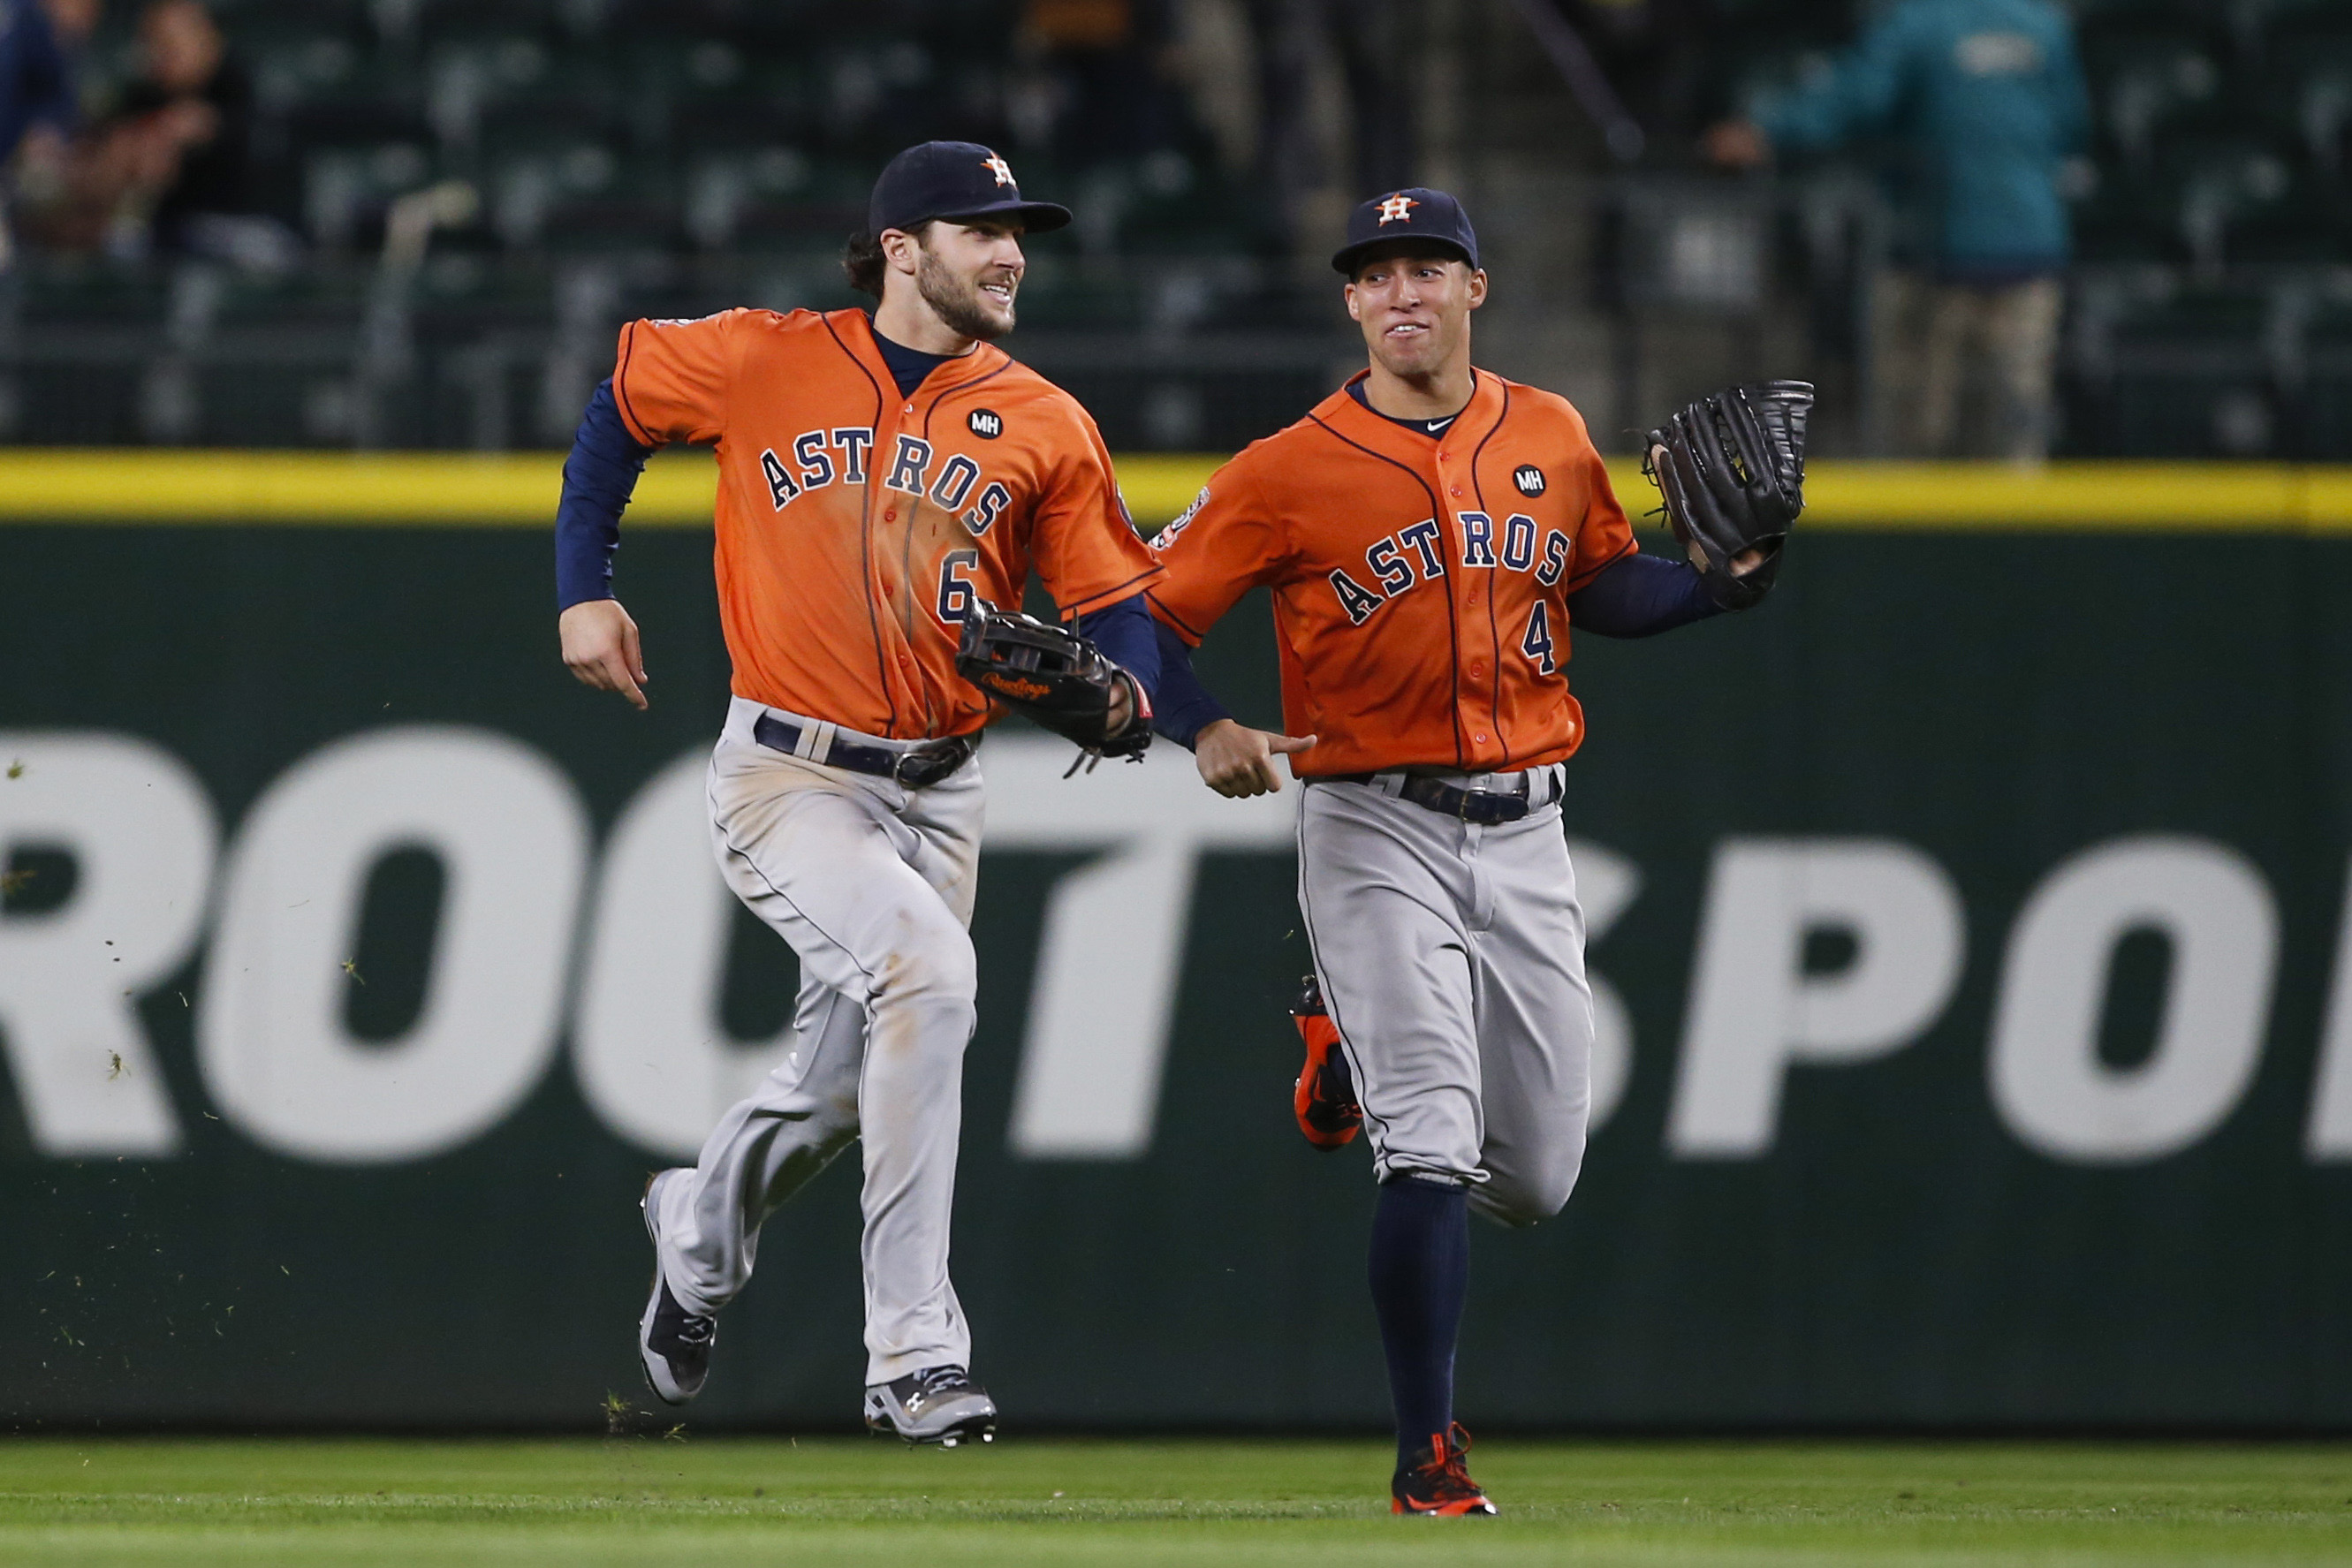 8832988-mlb-houston-astros-at-seattle-mariners